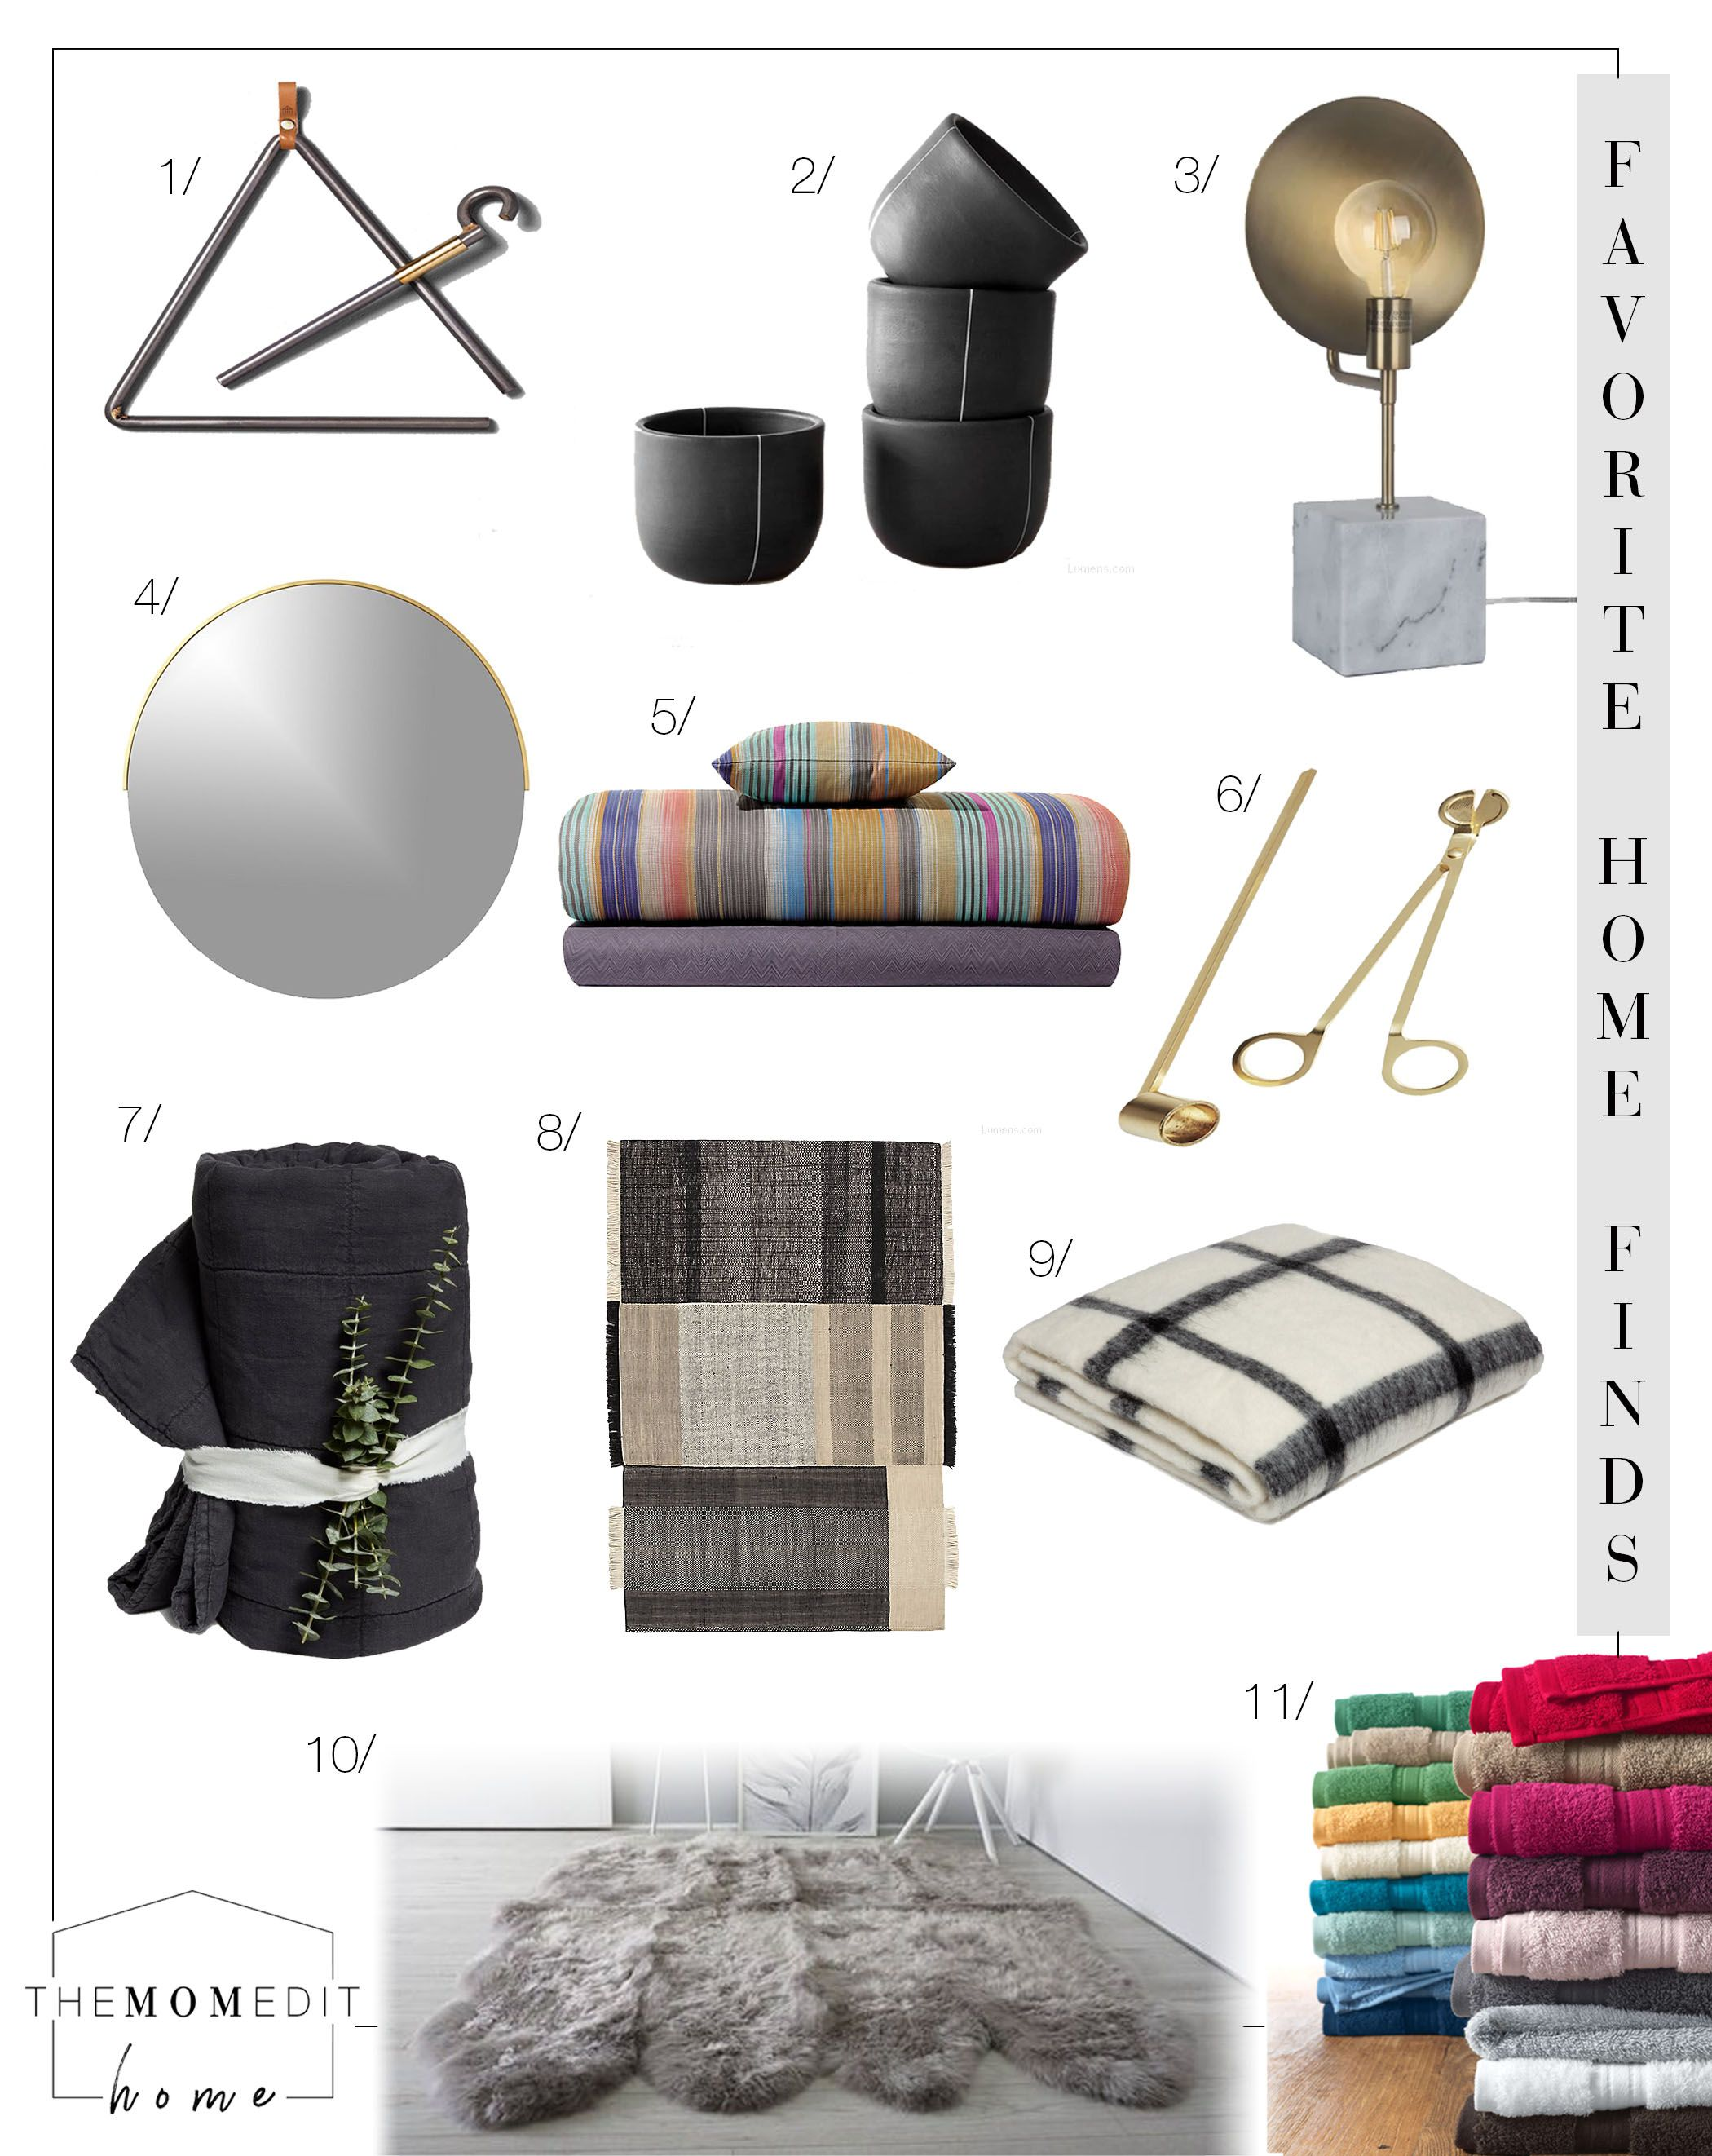 WEEKLY FAVORITE FINDS IN HOME DECOR BLACK FRIDAY CYBER MONDAY